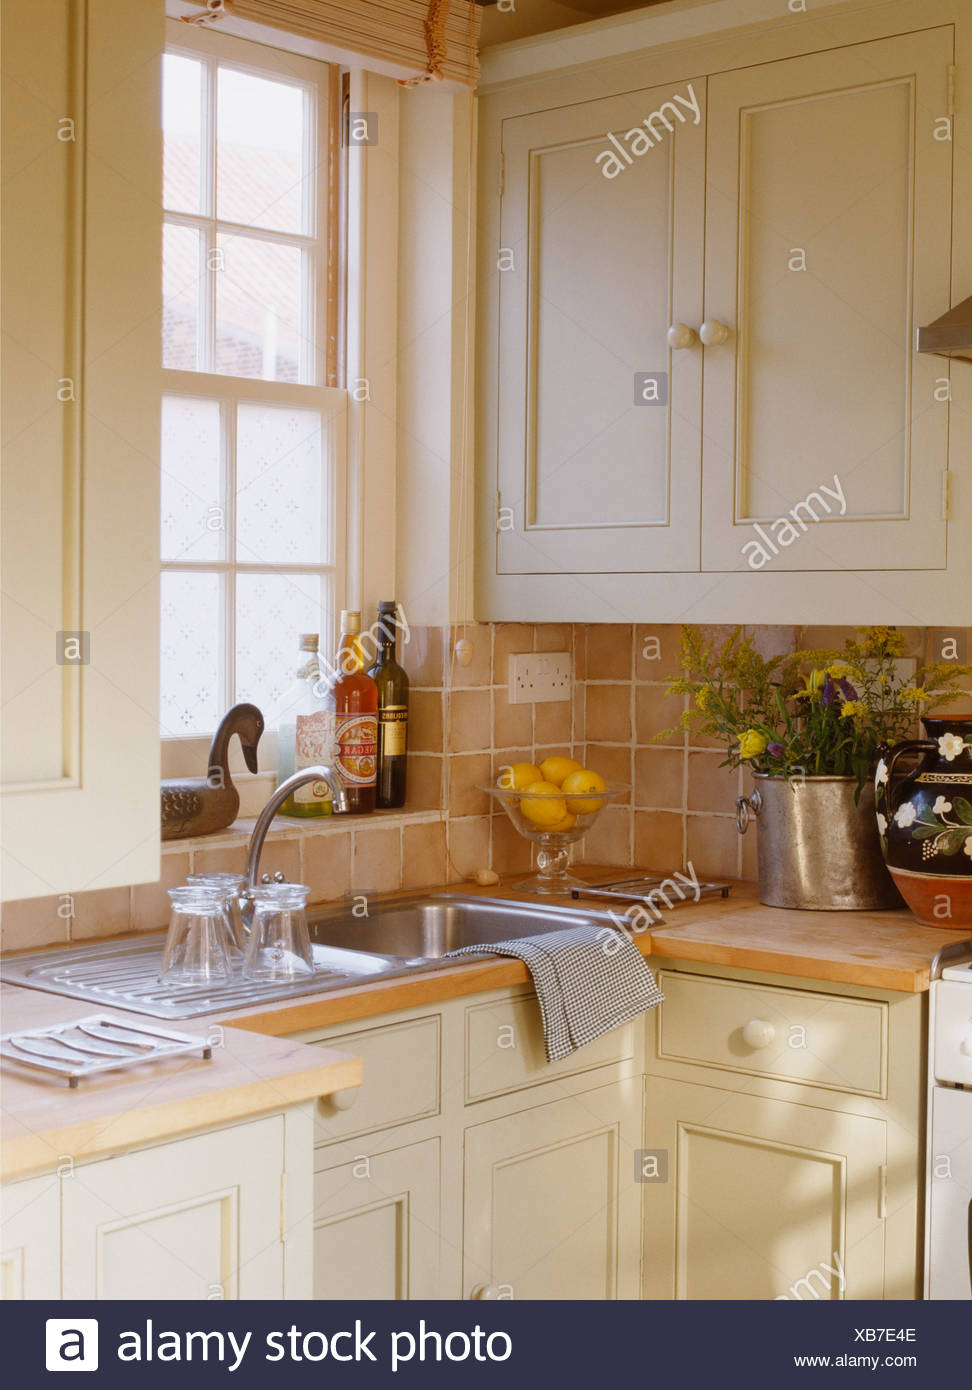 Wall Cupboards Stockfotos & Wall Cupboards Bilder - Alamy